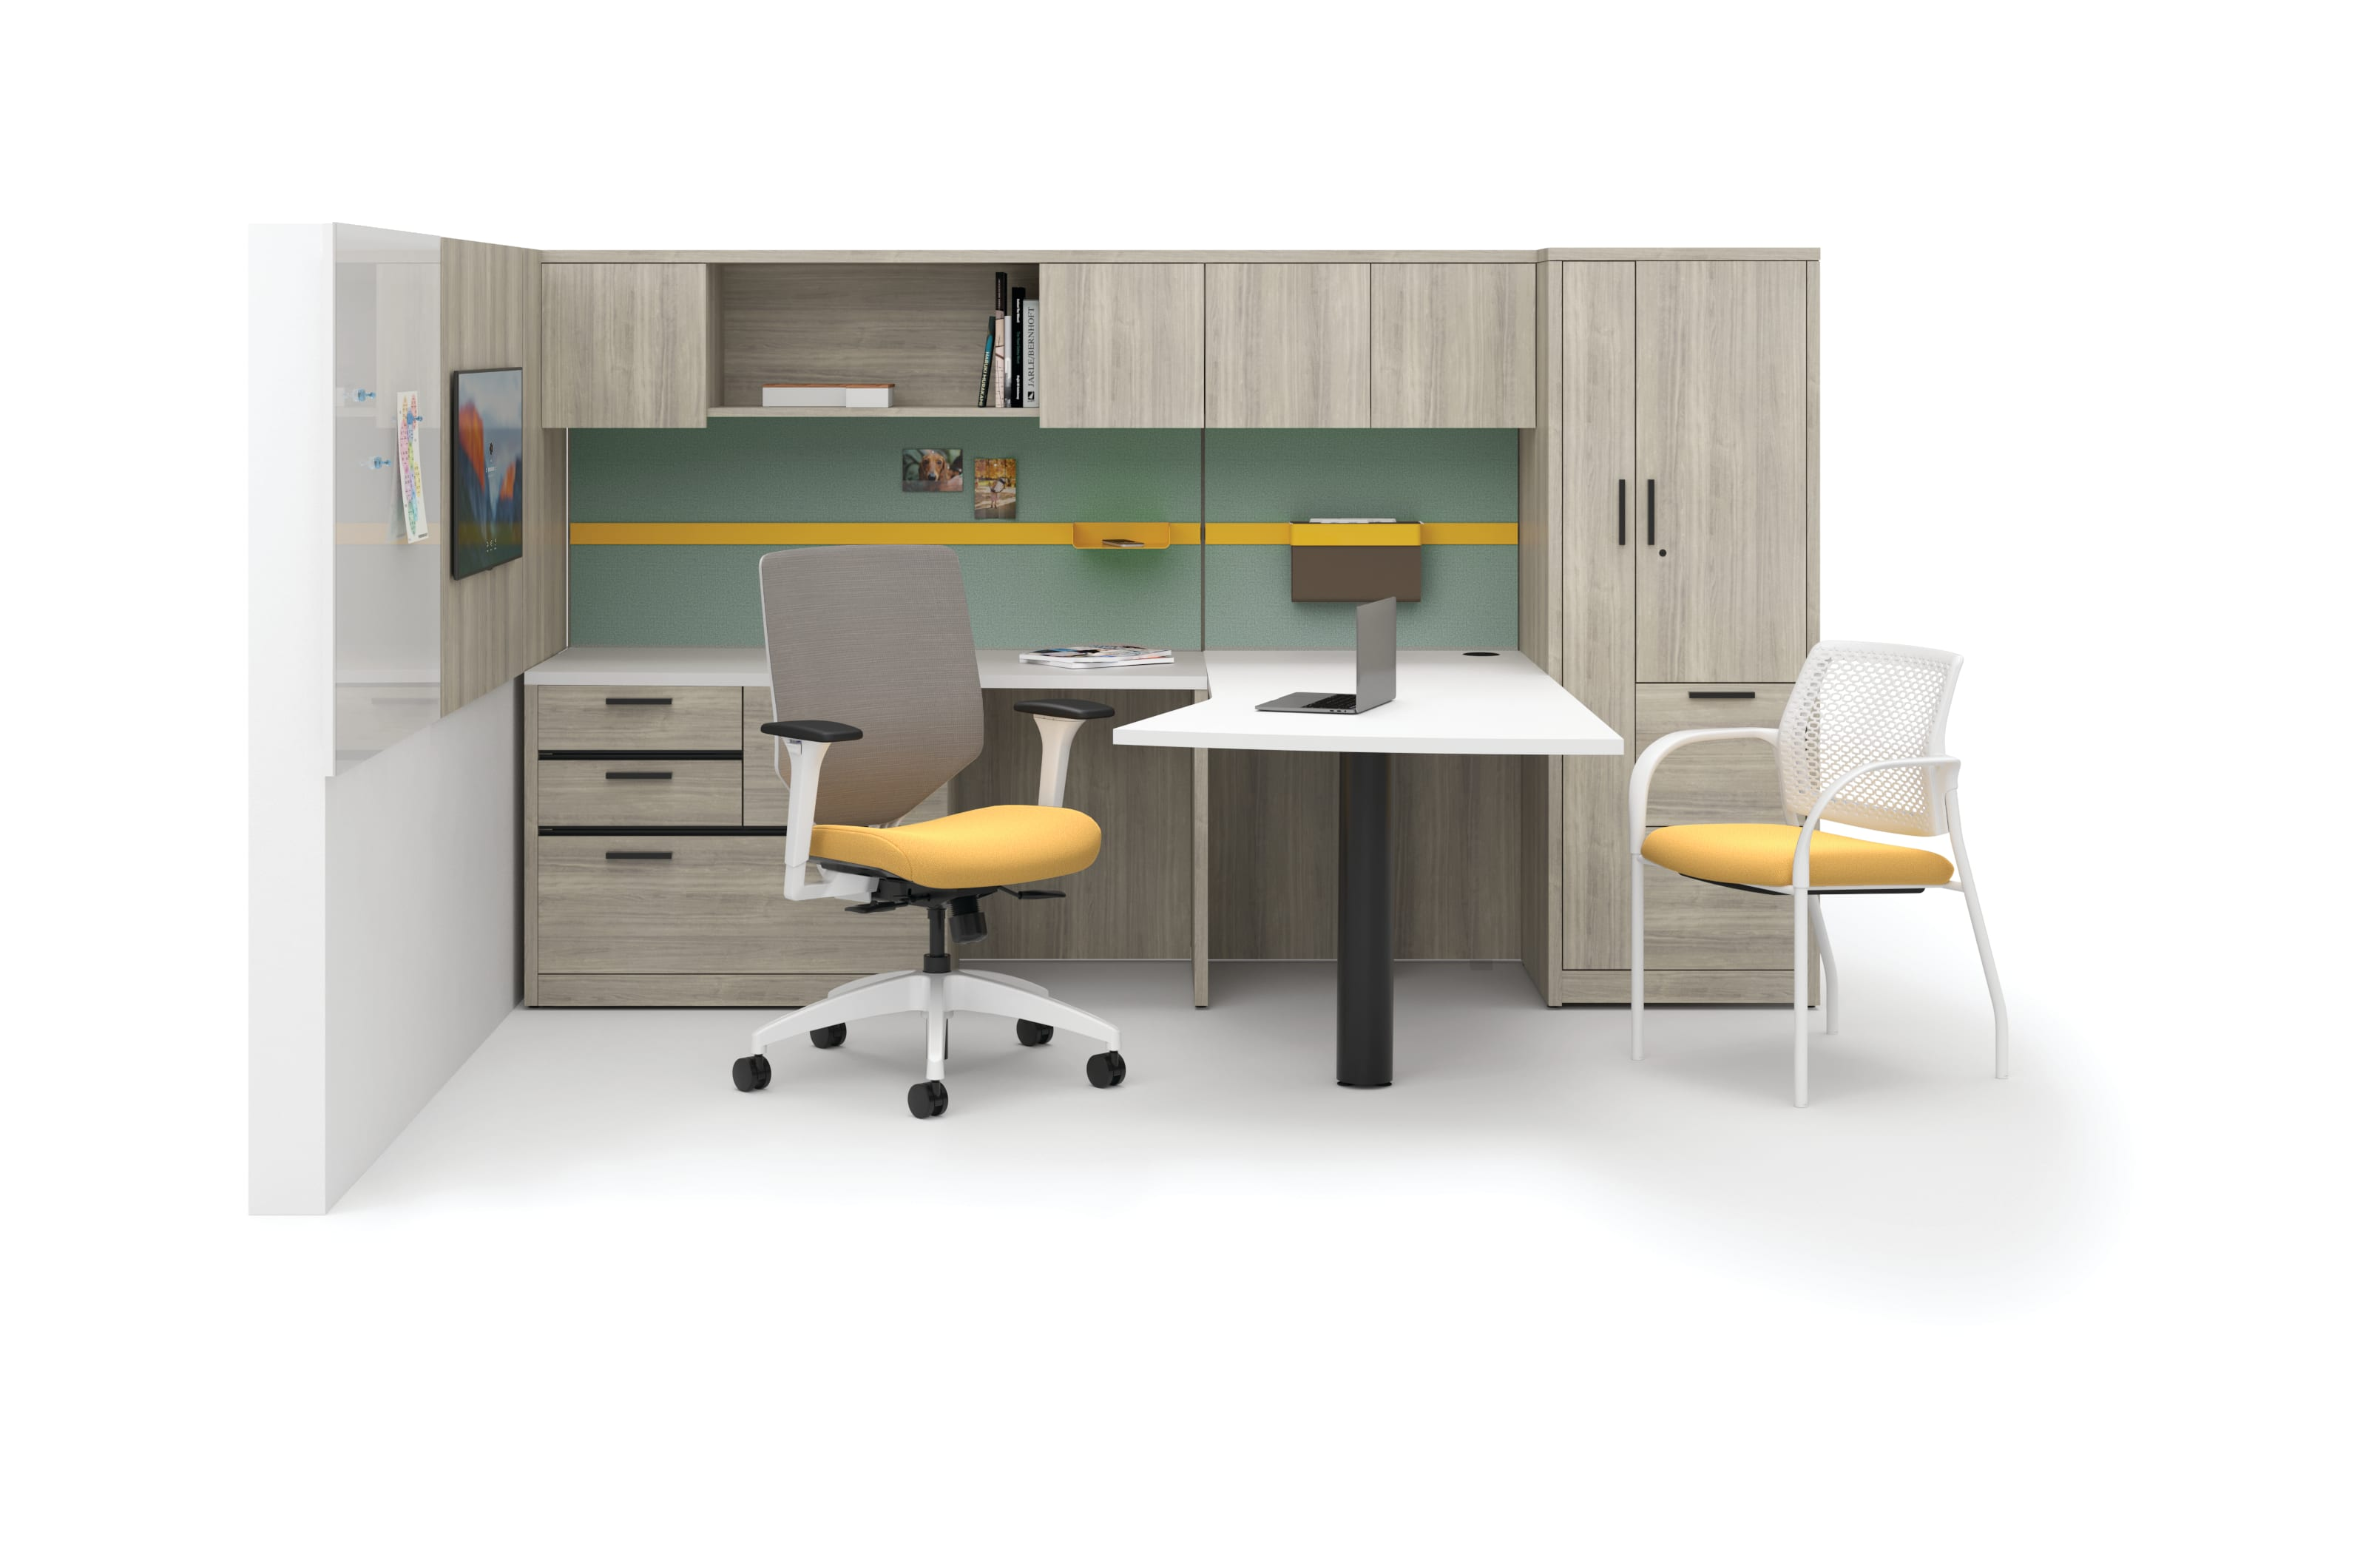 10500 Series Desk with Workwall tiles and Solve and Ignition seating